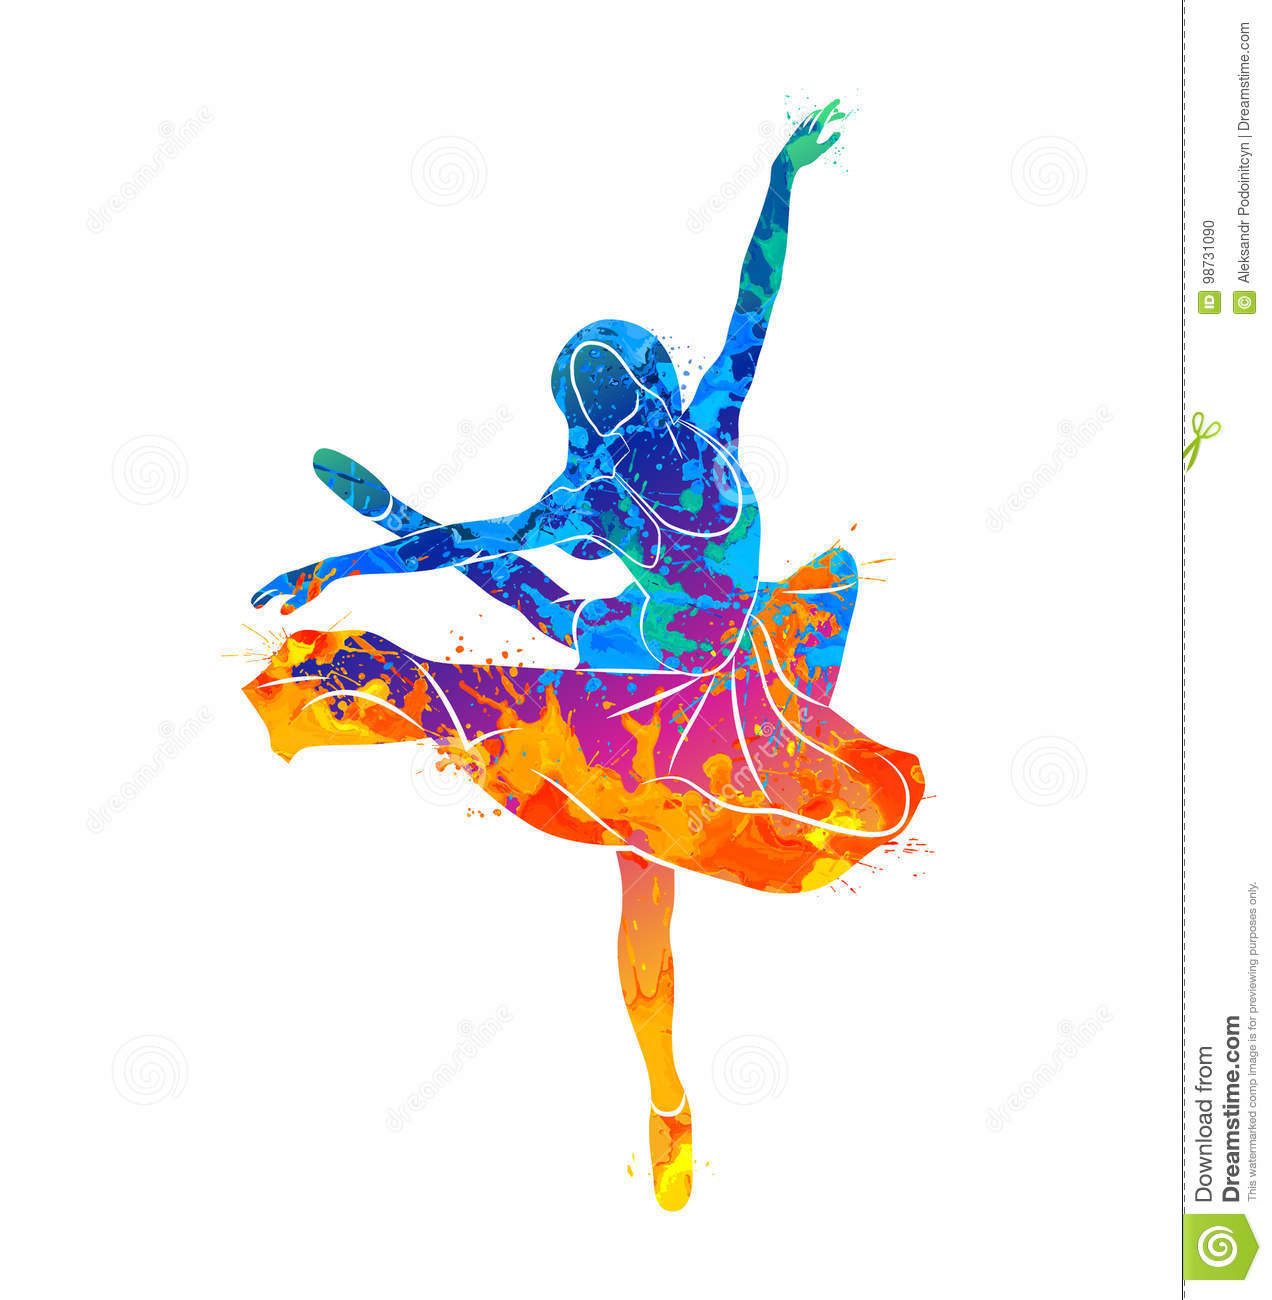 ef159c6fa Abstract dancing girl from splash of watercolors. Vector illustration of  paints. More similar stock illustrations